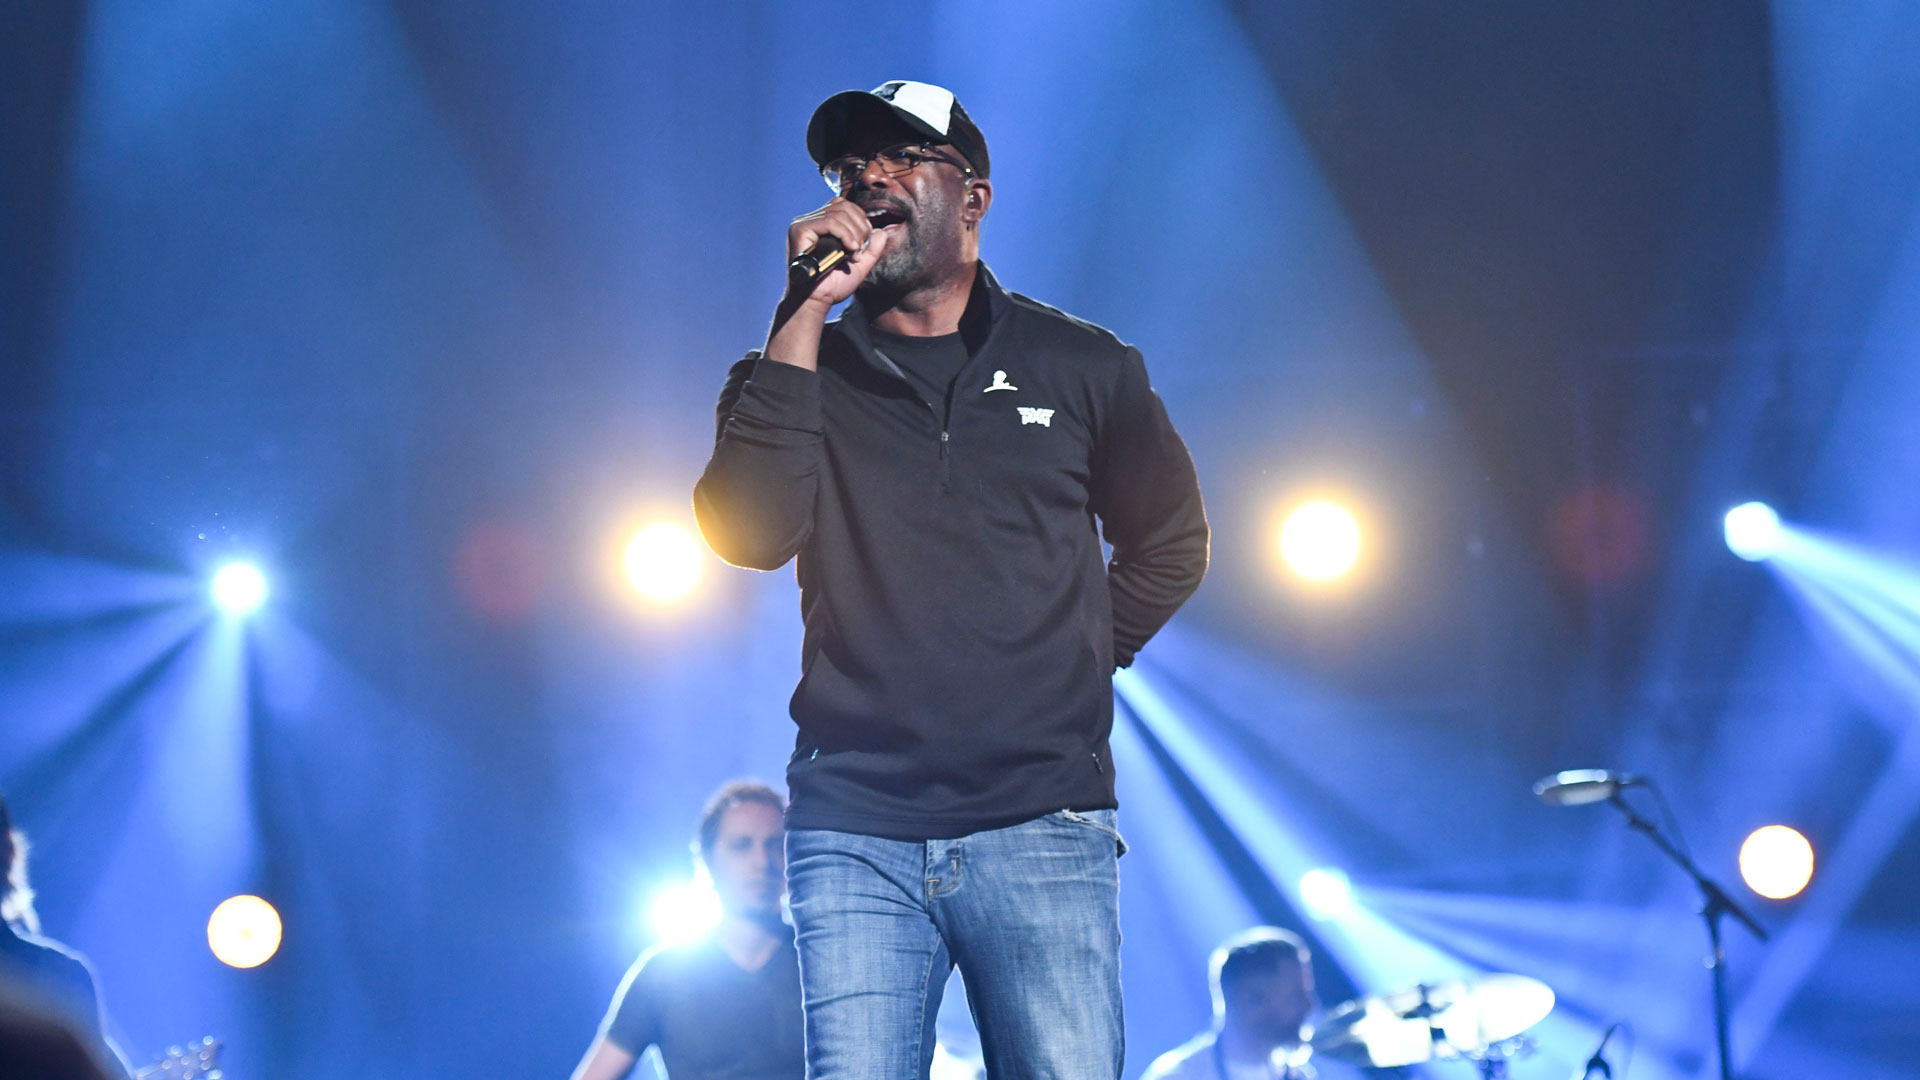 Darius Rucker looks oh-so-cozy while rehearsing his performance at Country Music's Party of the Year.